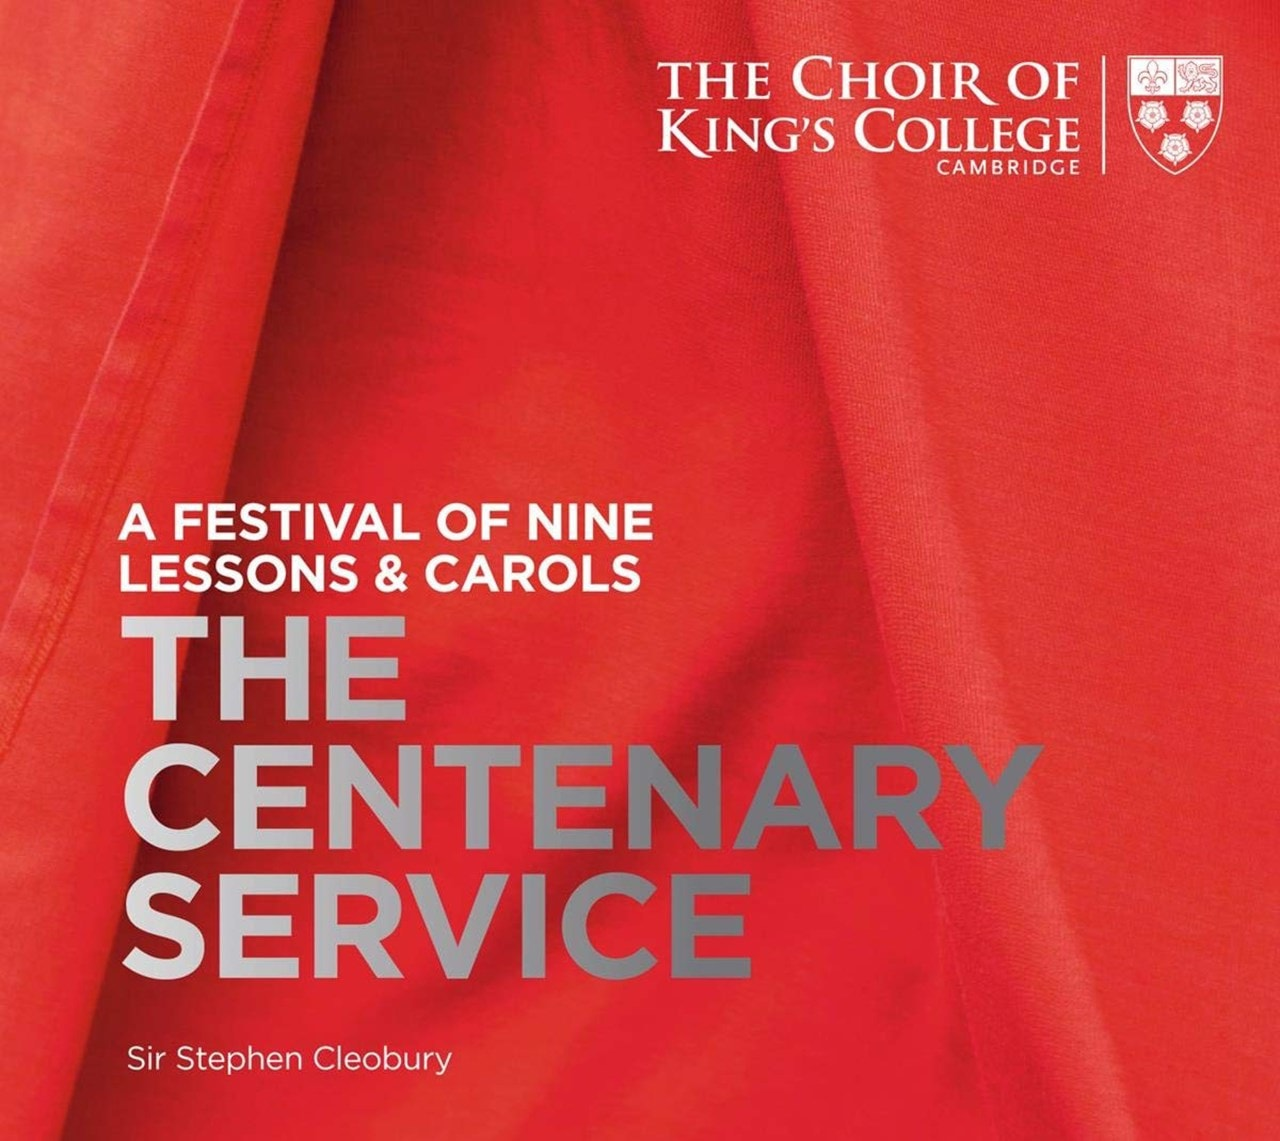 A Festival of Nine Lessons & Carols: The Centenary Service - 1